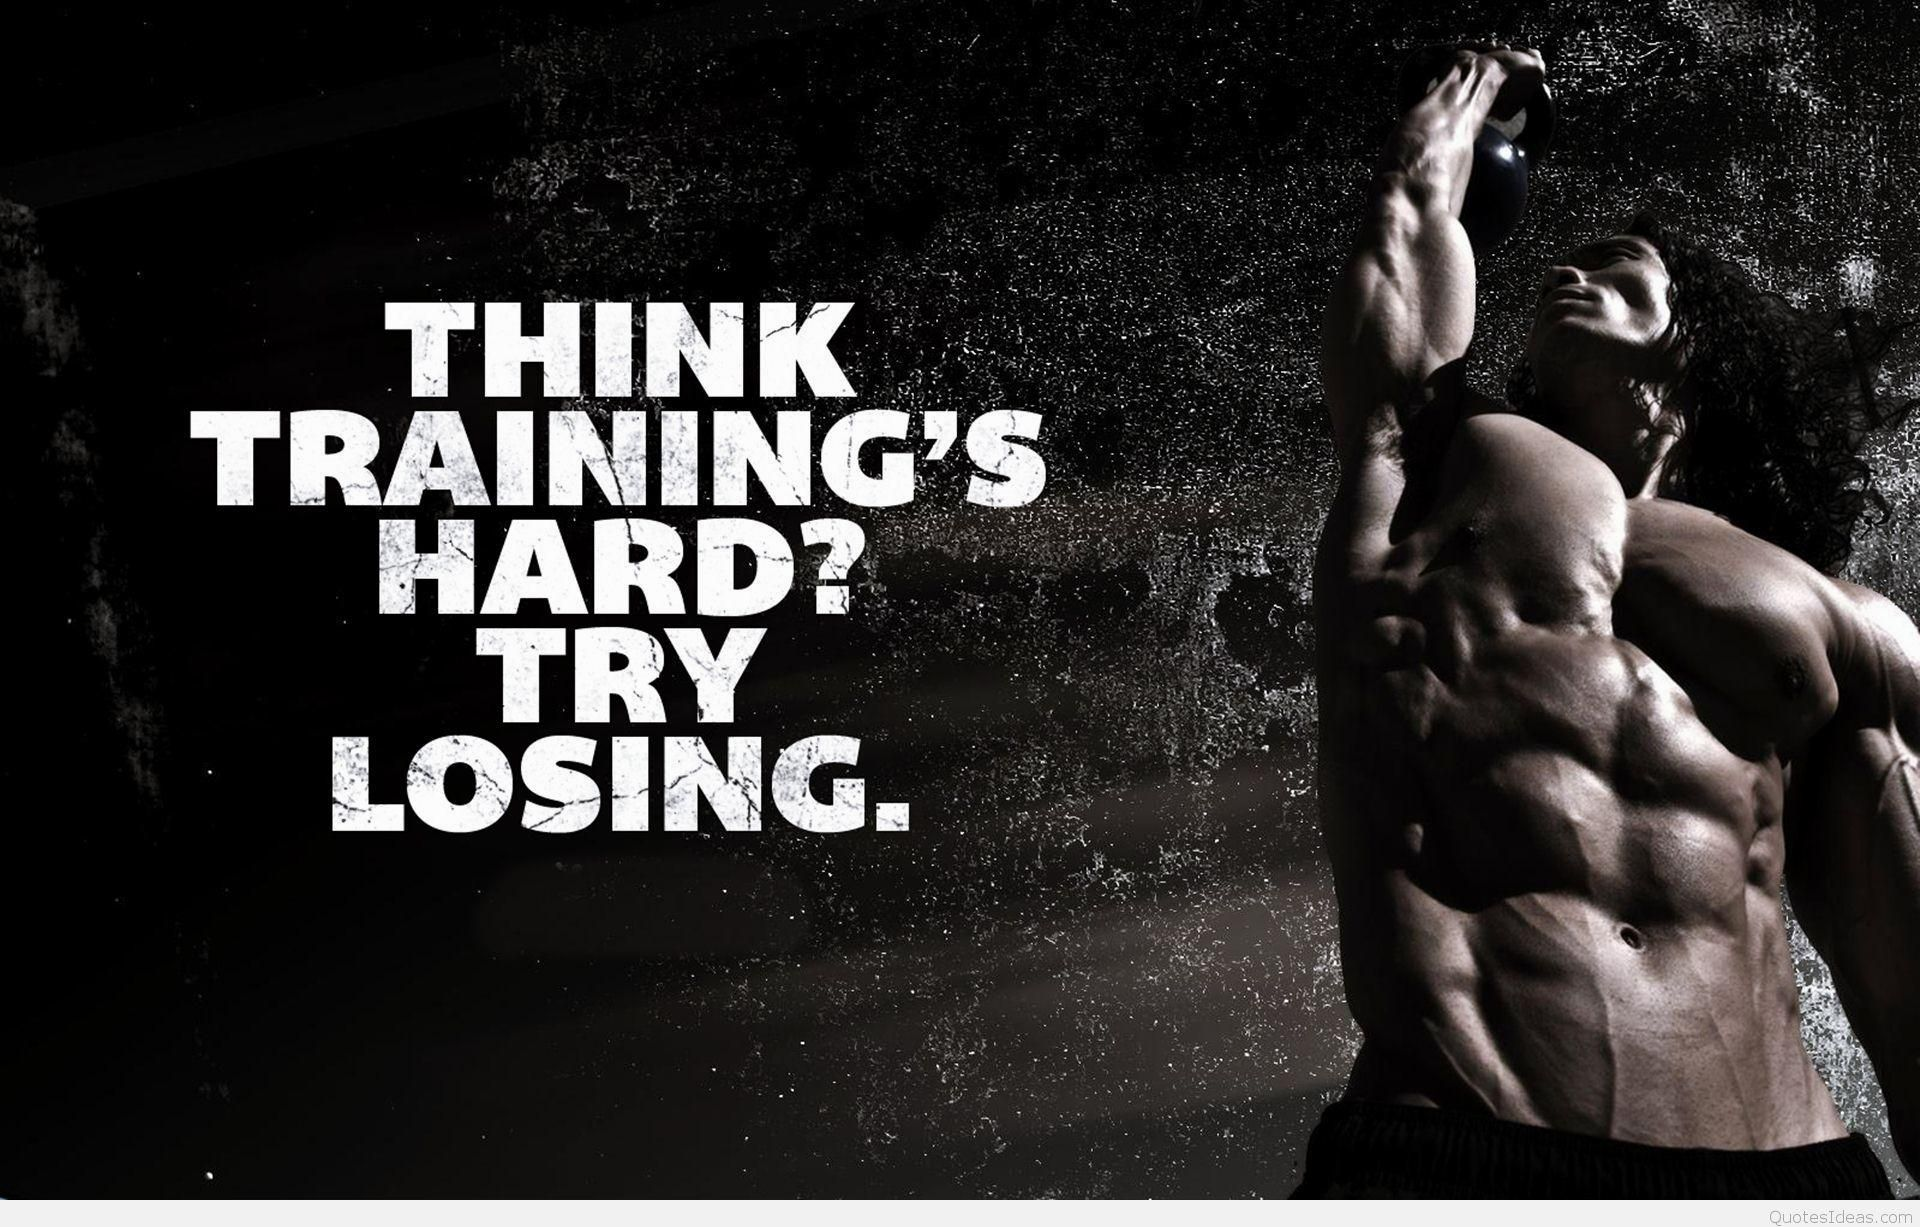 Bodybuilding Wallpaper Hd Collections 1920 1200 Wallpapers Bodybuilding 58 Wallp Nike Motivation Quotes Fitness Motivation Wallpaper Fitness Motivation Quotes